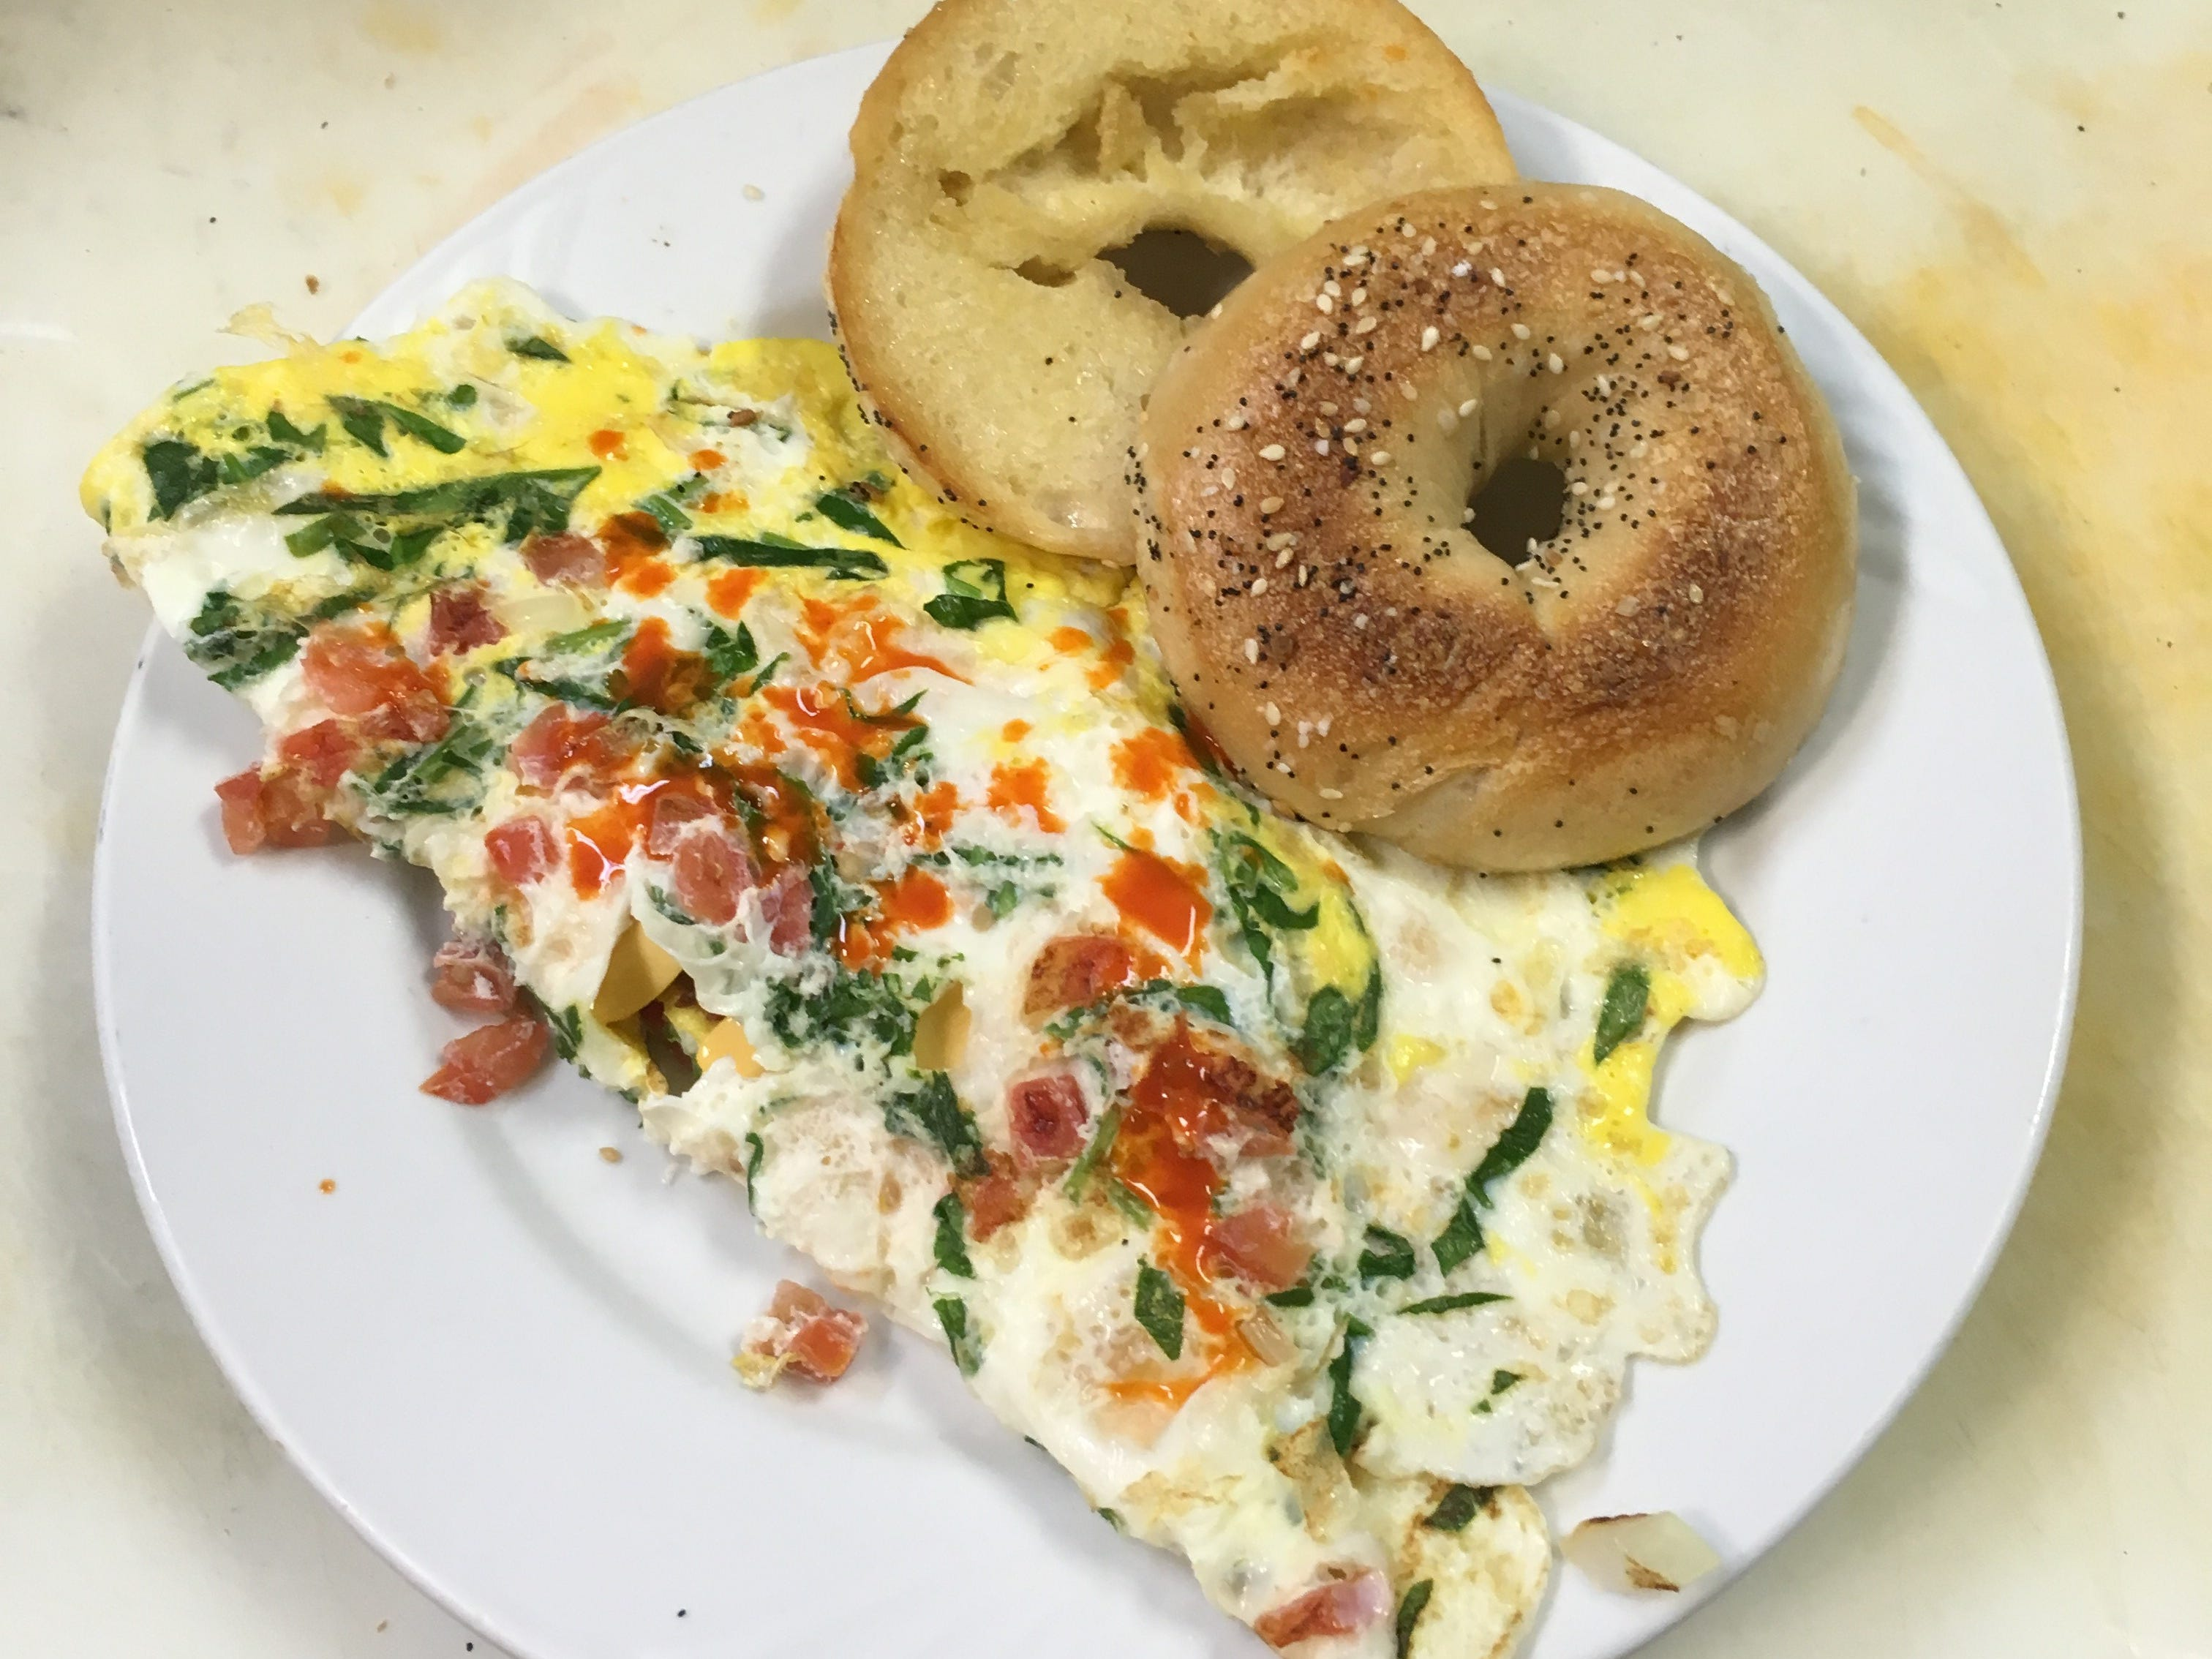 A veggie omelet at Brennan's Delicatessen, opening in Middletown early next year.